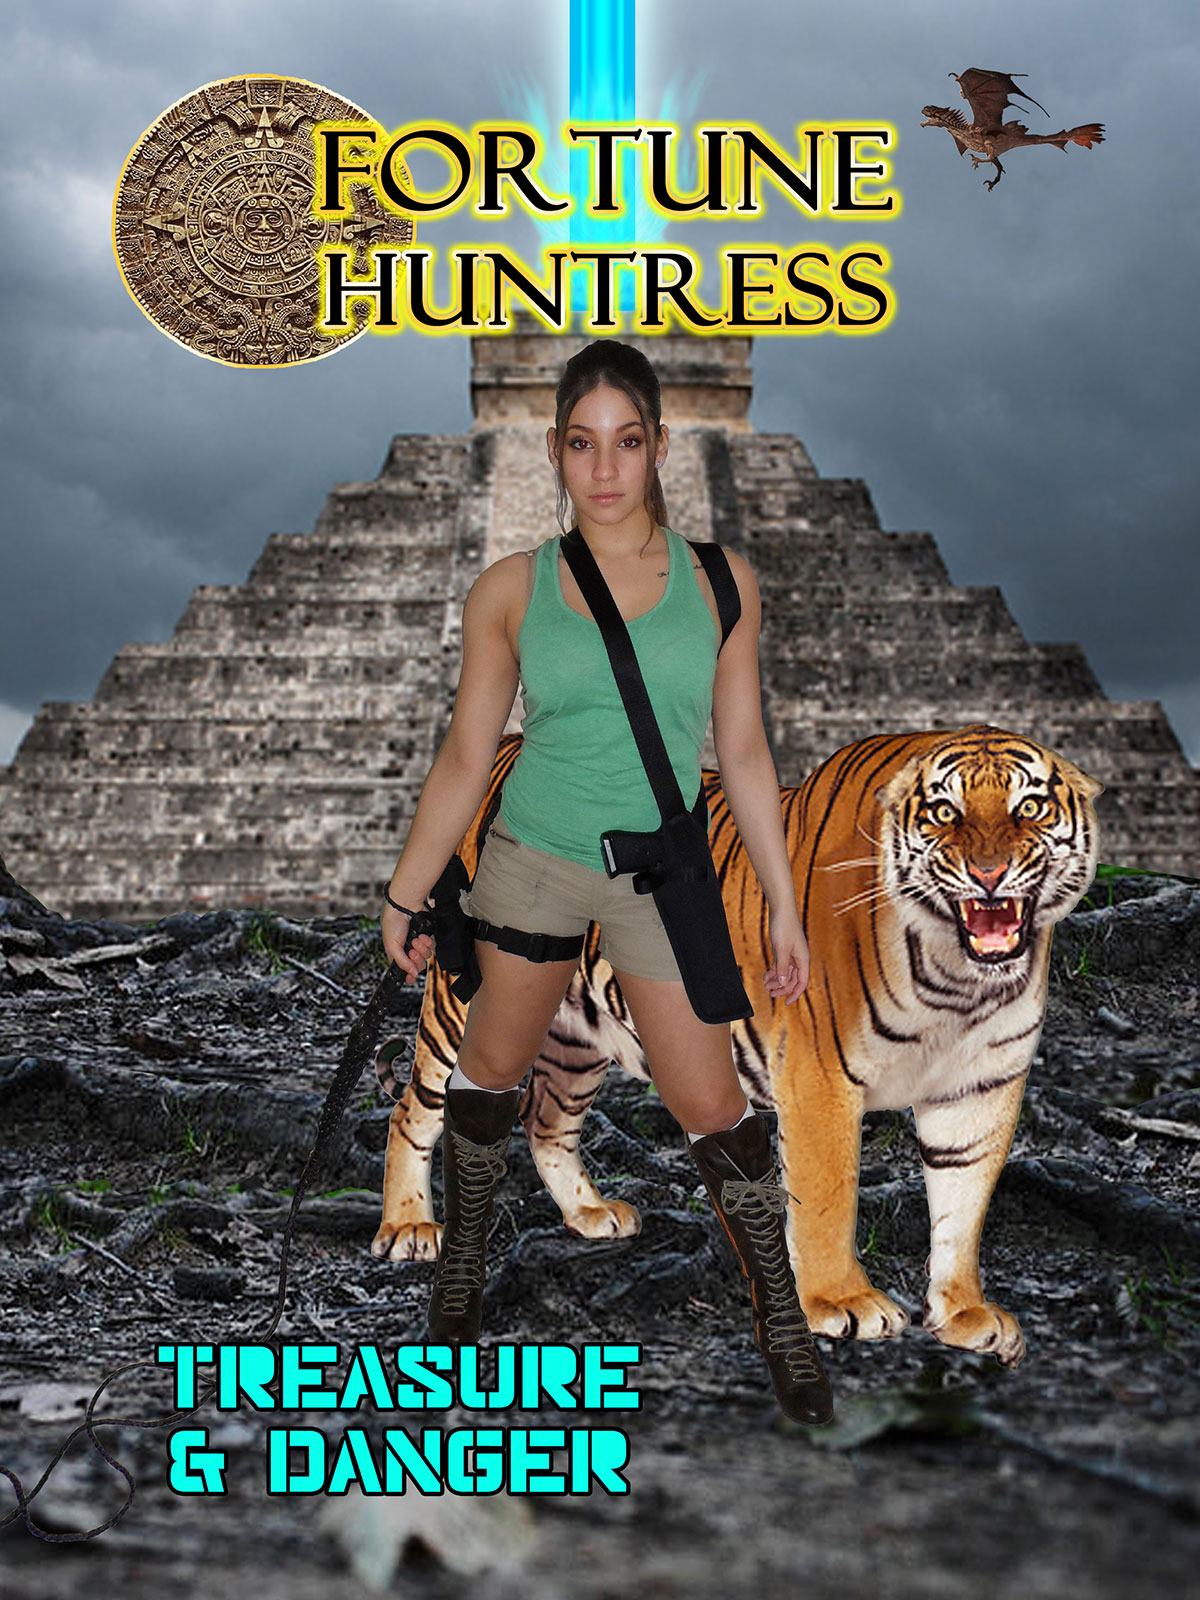 Fortune Huntress #1